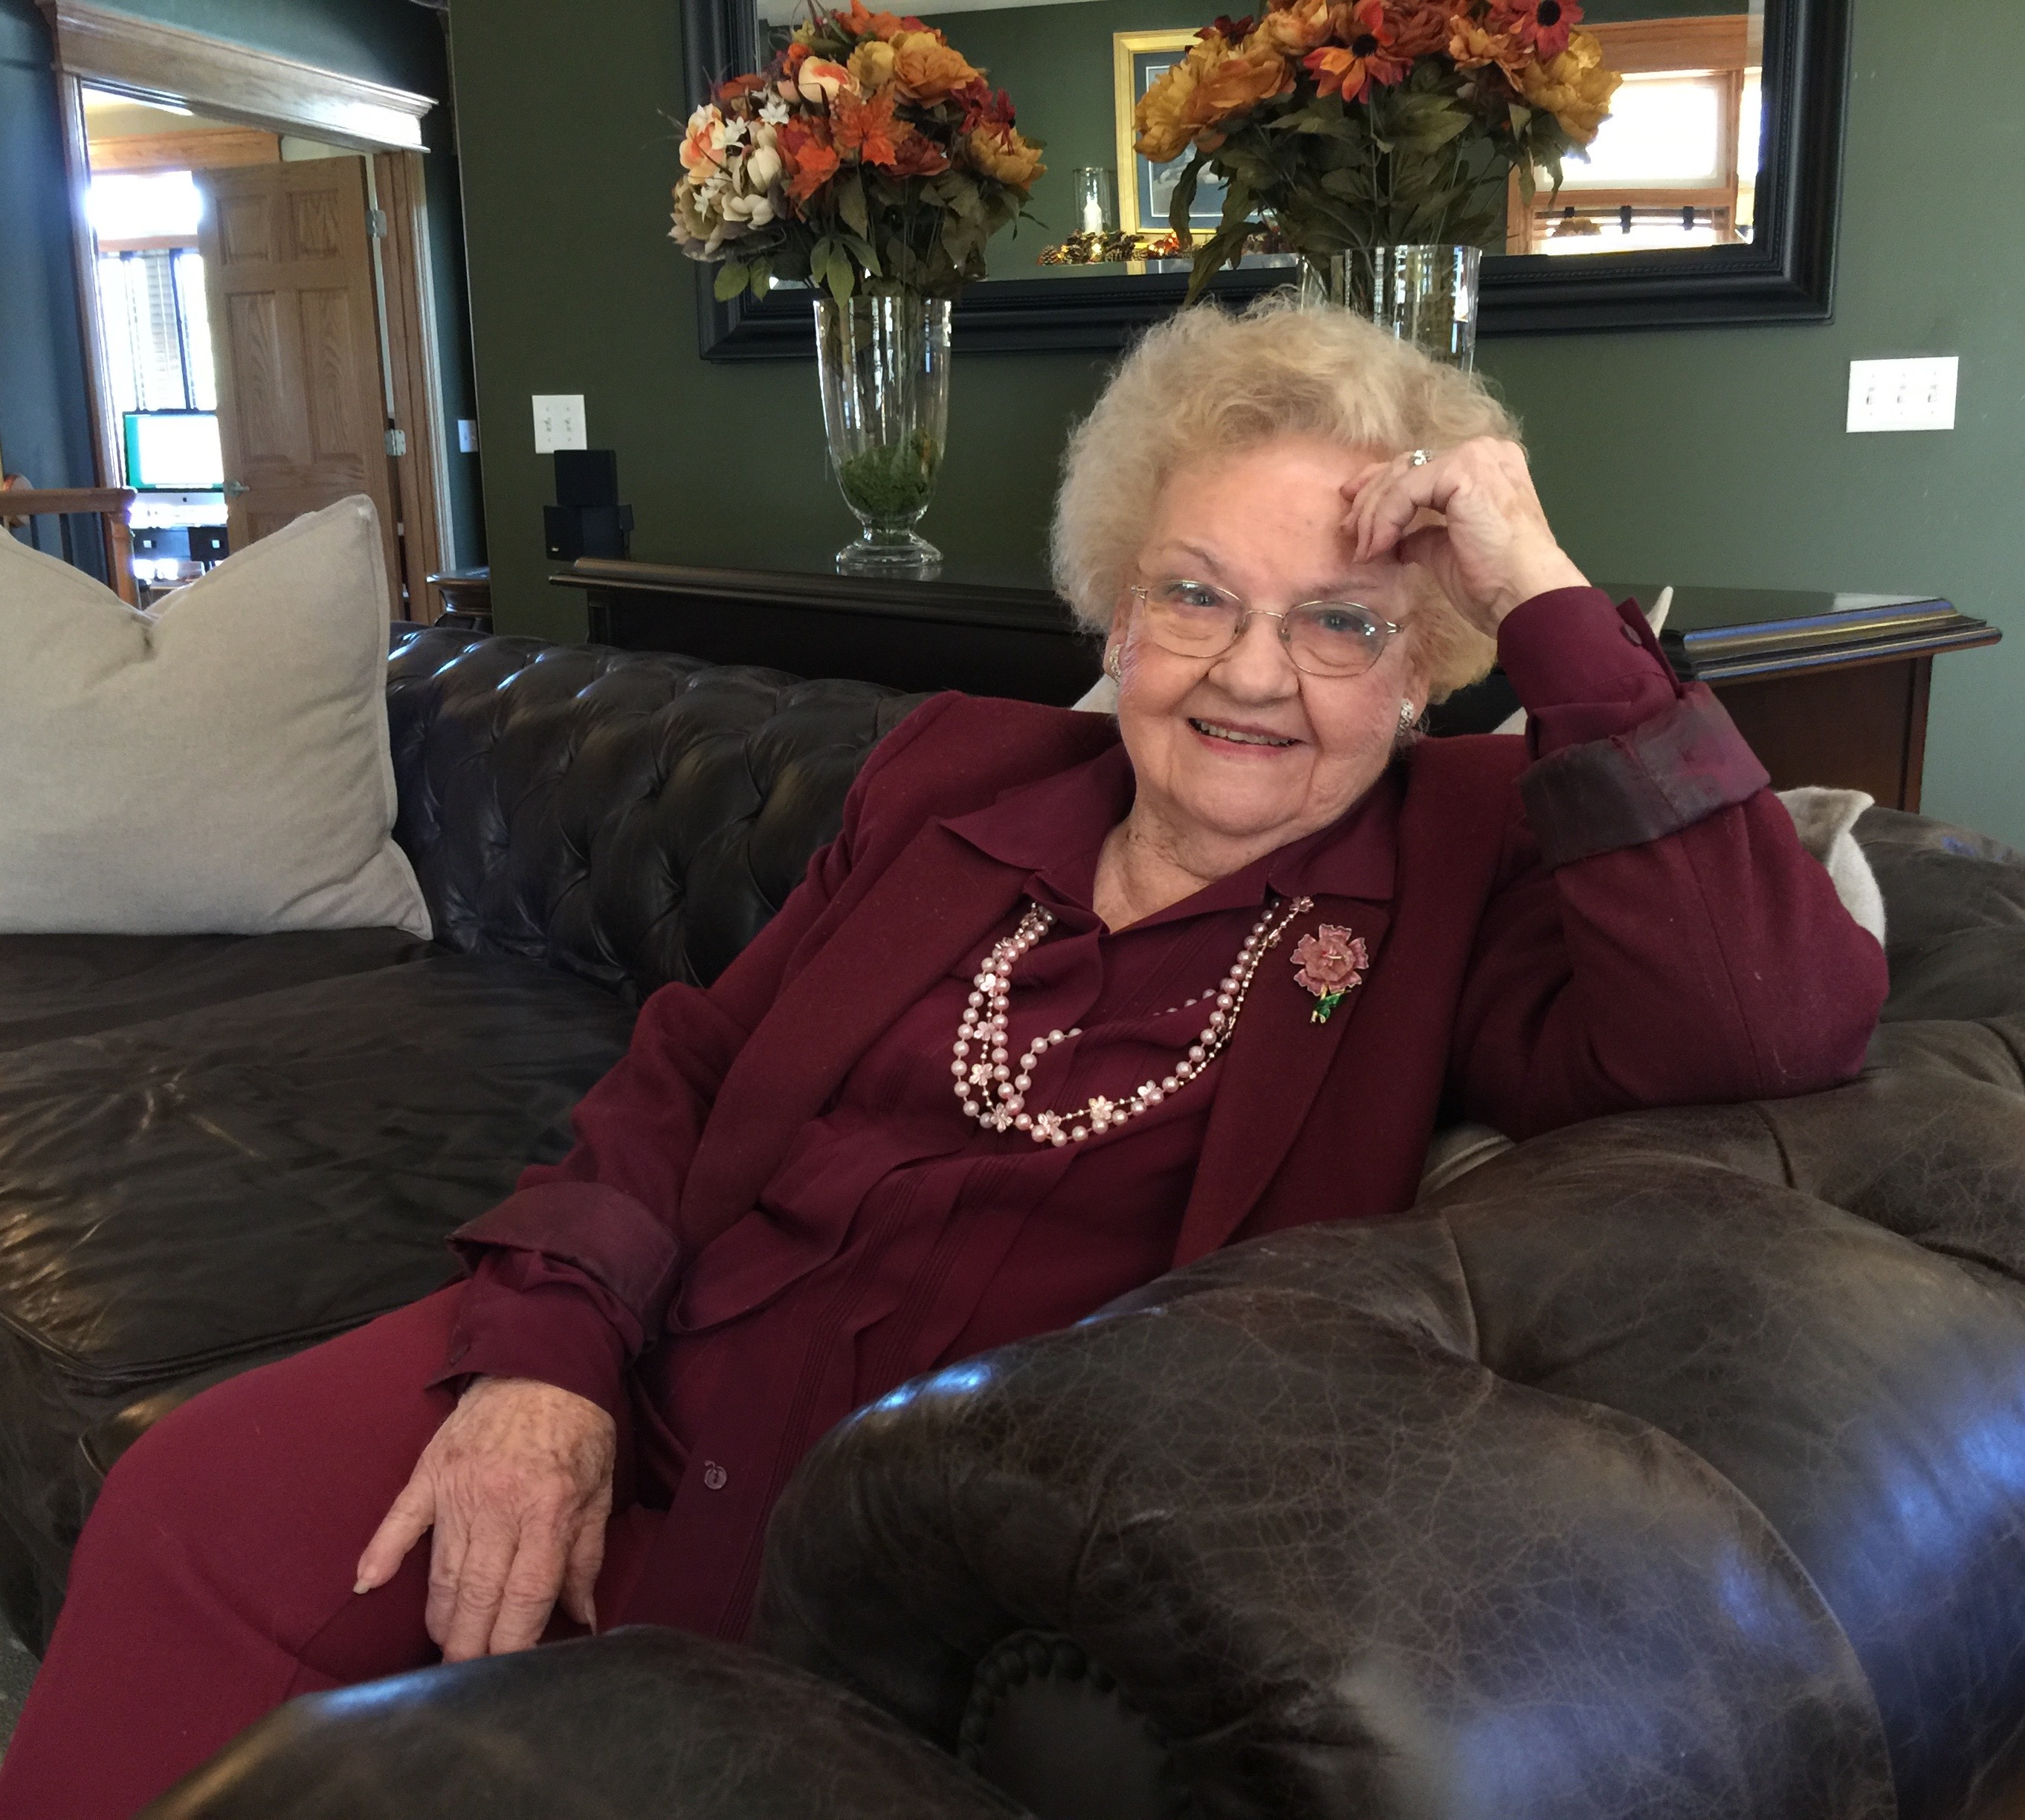 Image result for grandma on couch